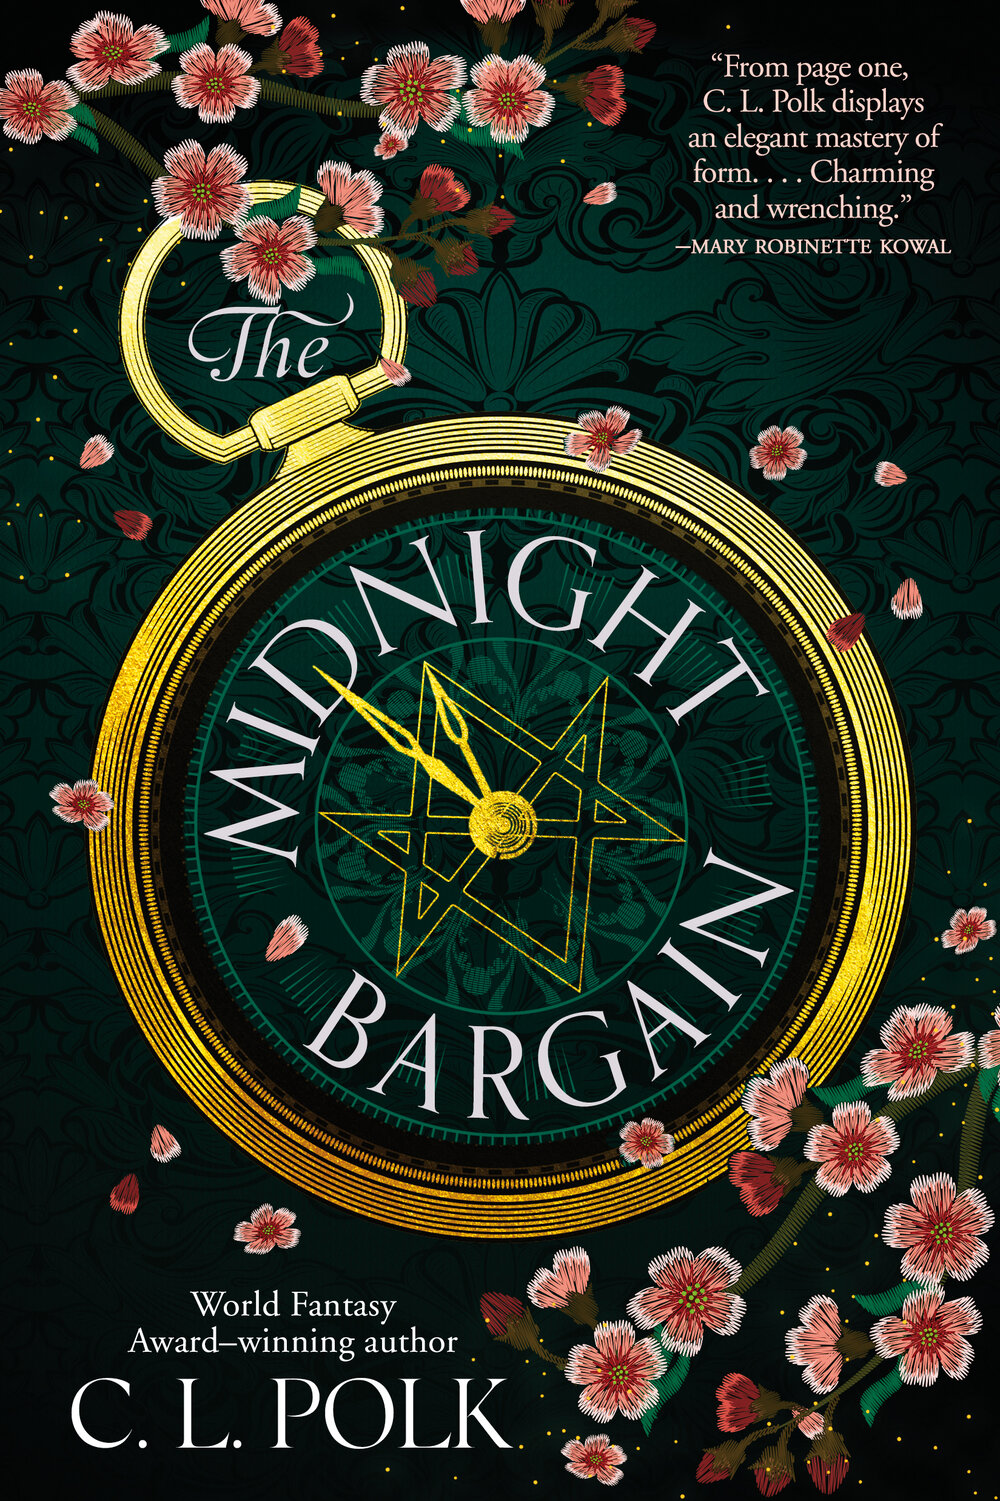 The front cover of the book titled The Midnight Bargain published by Erewhon Press